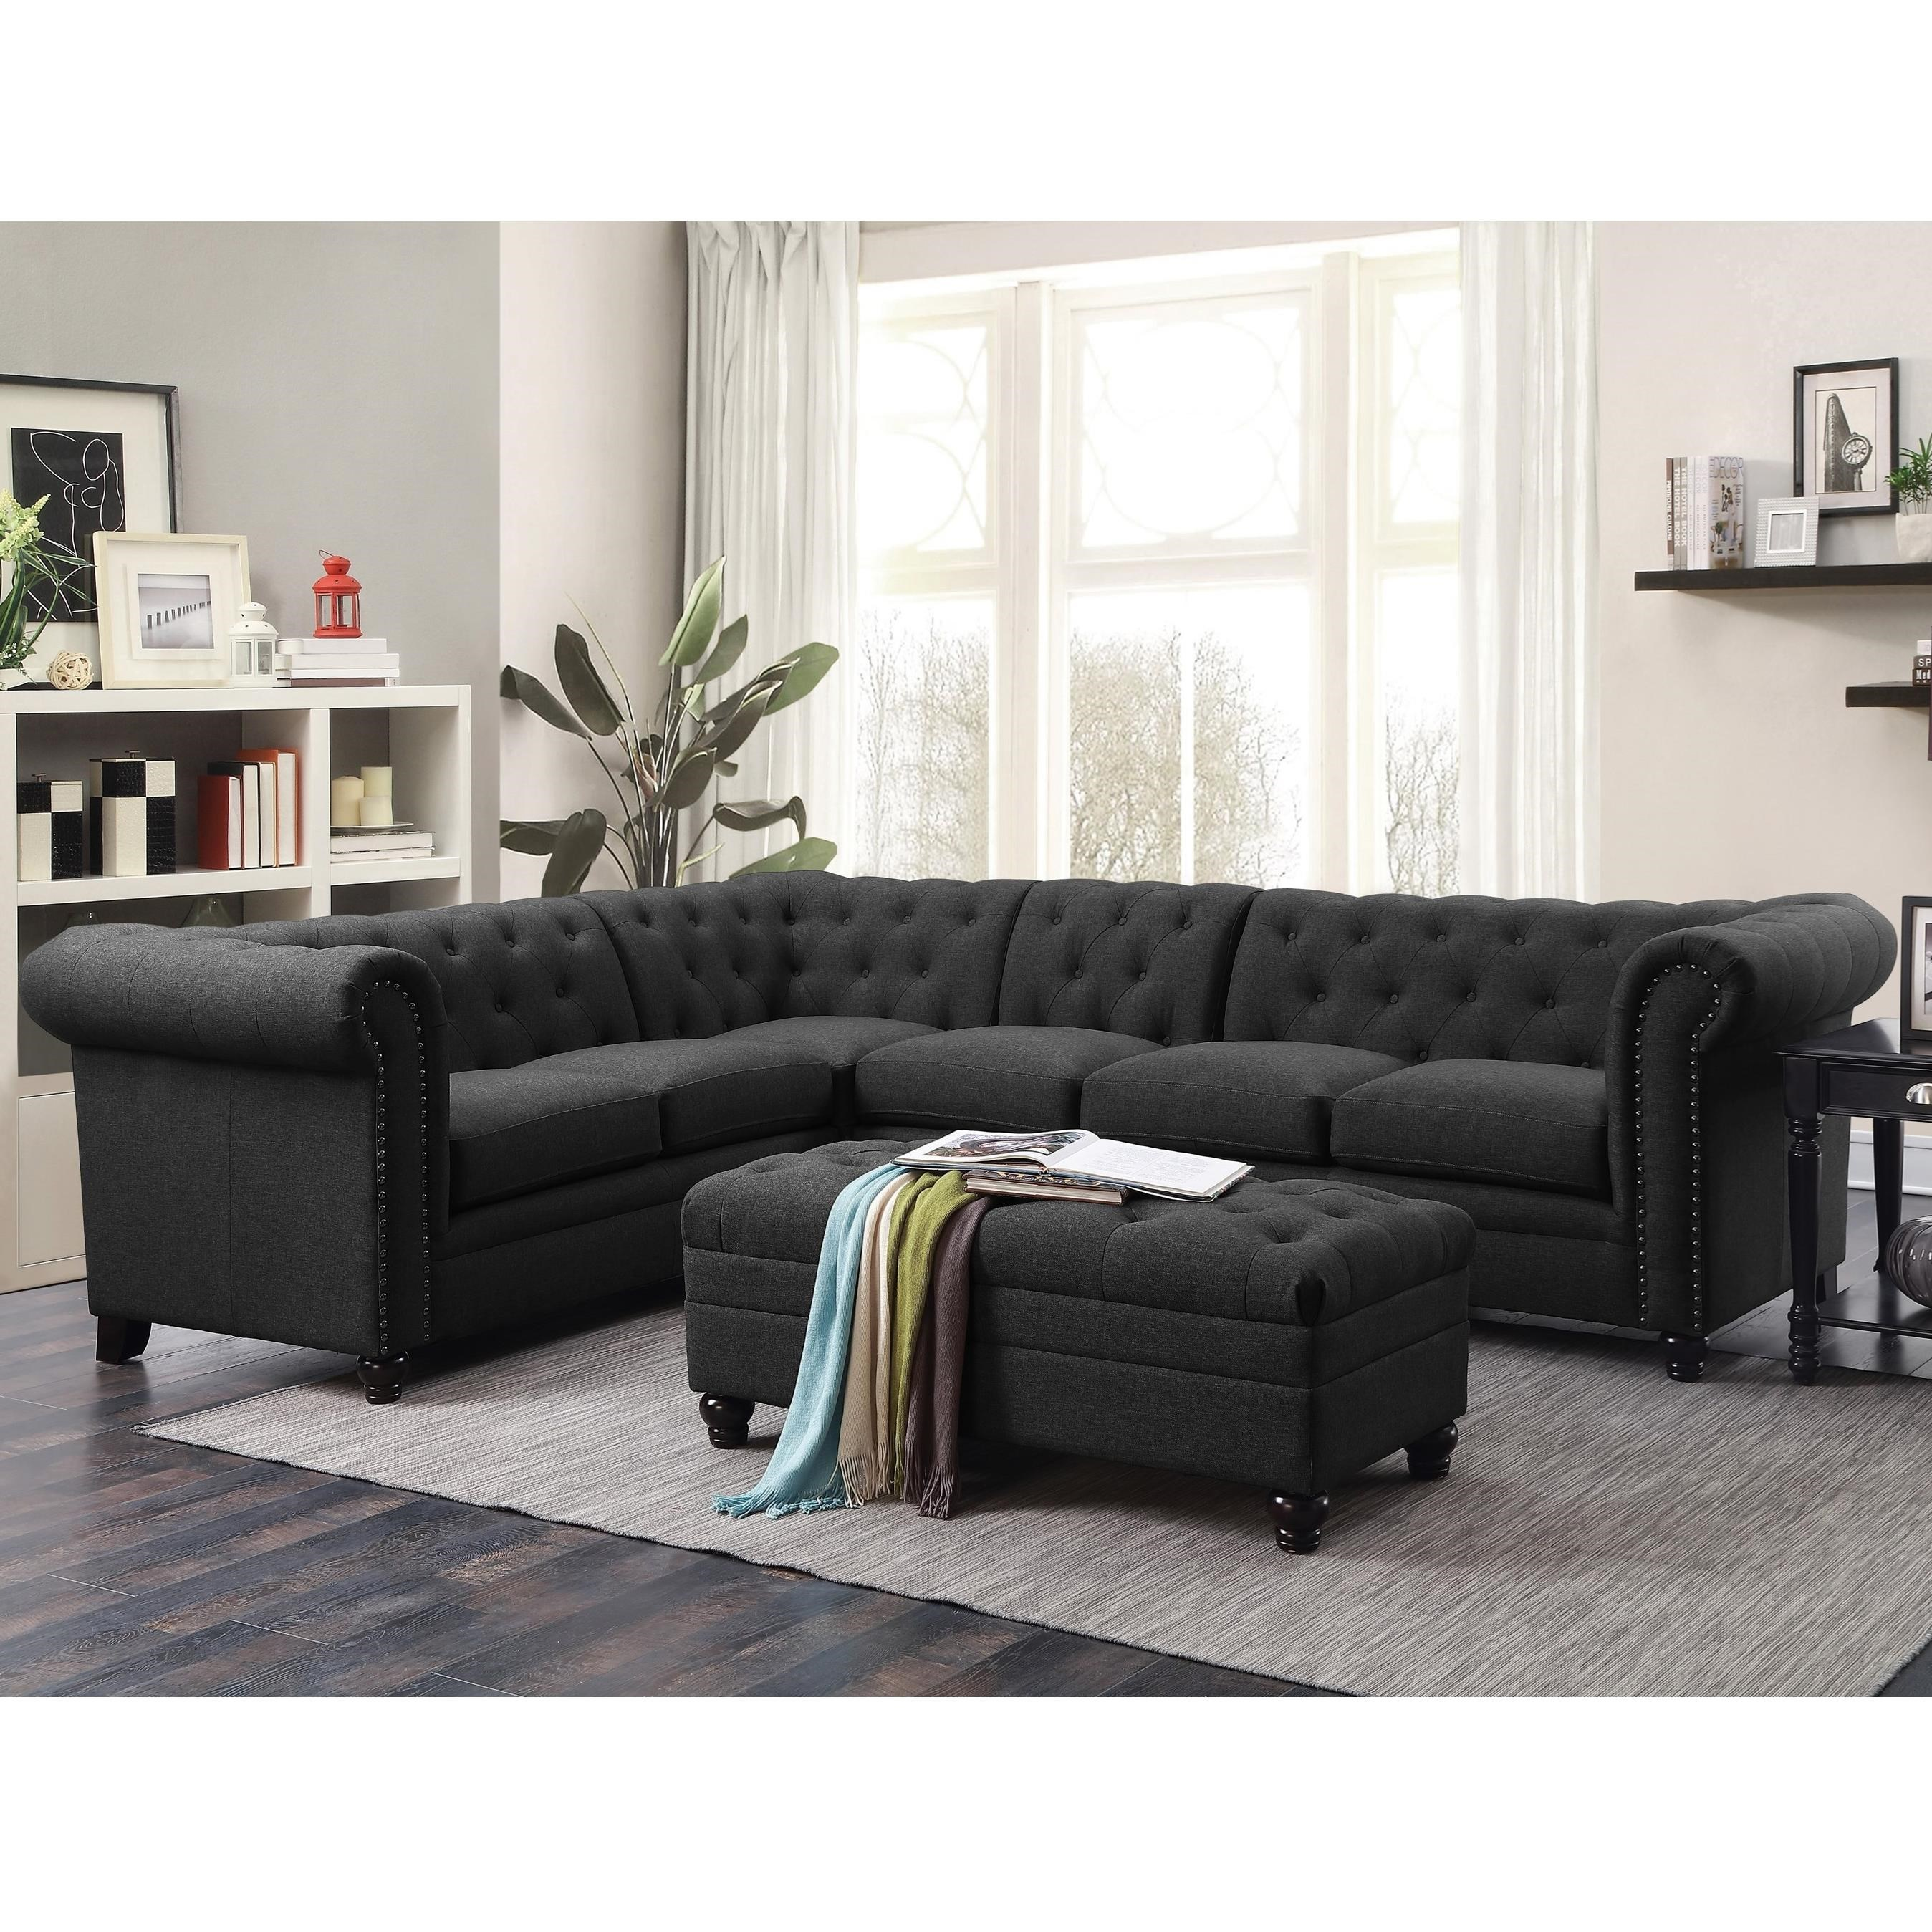 Armless Chair Sectional Inspiration Idea Armless Chairs For